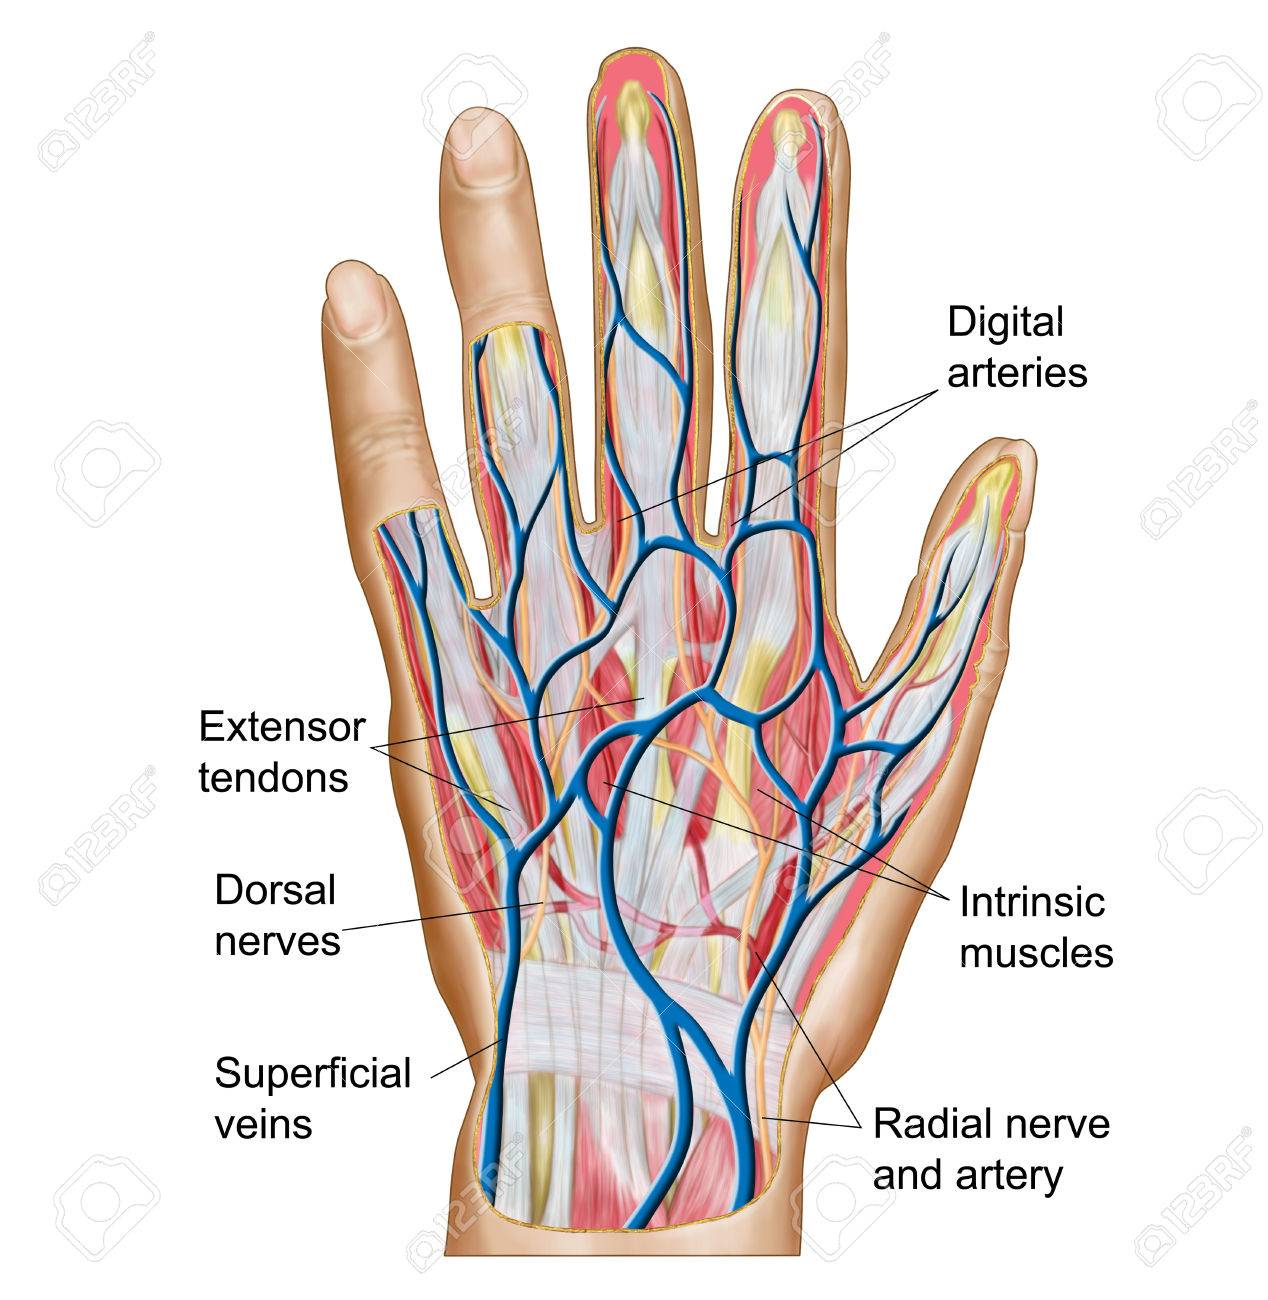 Anatomy Of Back Of Human Hand Stock Photo Picture And Royalty Free